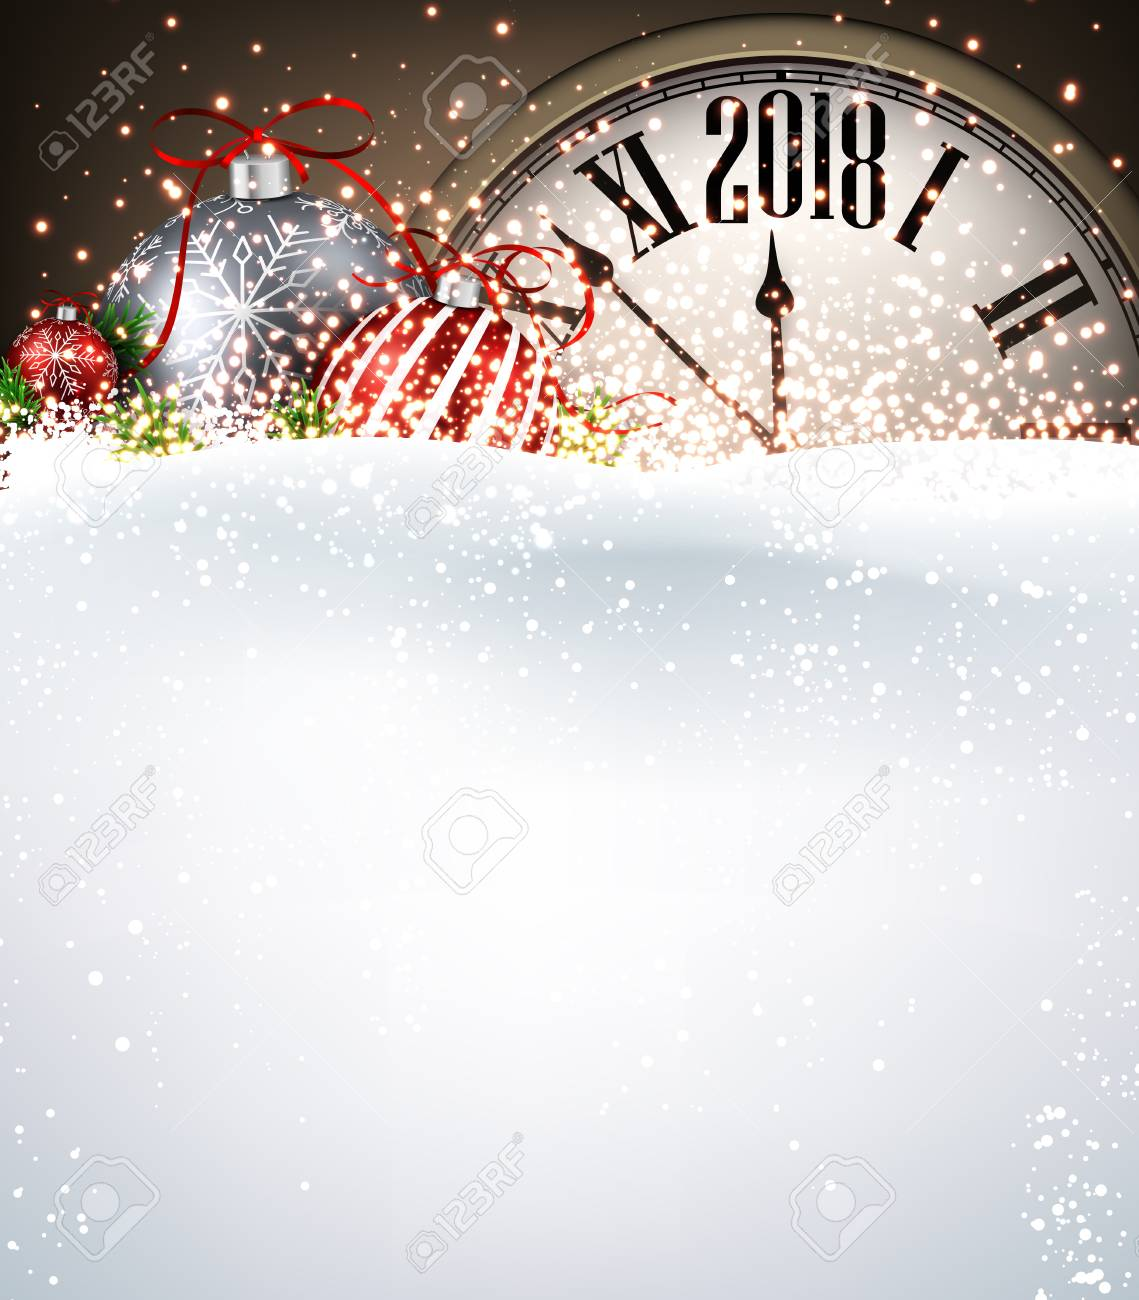 2018 New Year Background With Clock, Christmas Balls And Snow ...